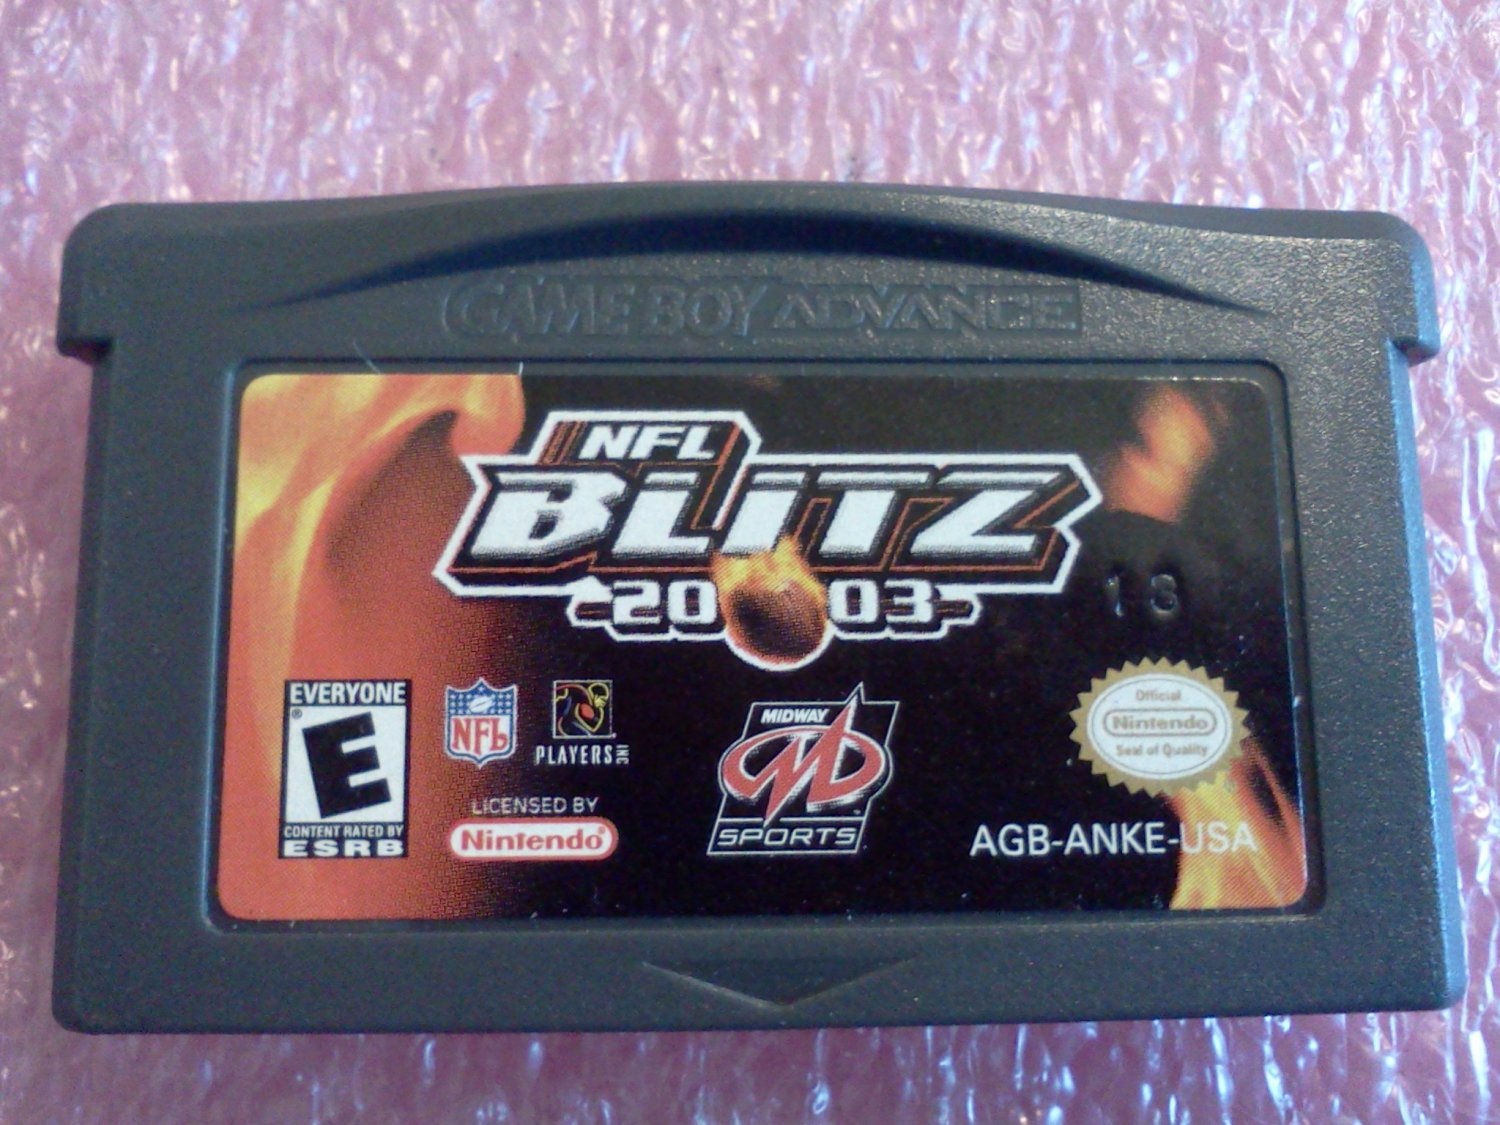 NFL Blitz 2003 (Nintendo Game Boy Advance, 2002)